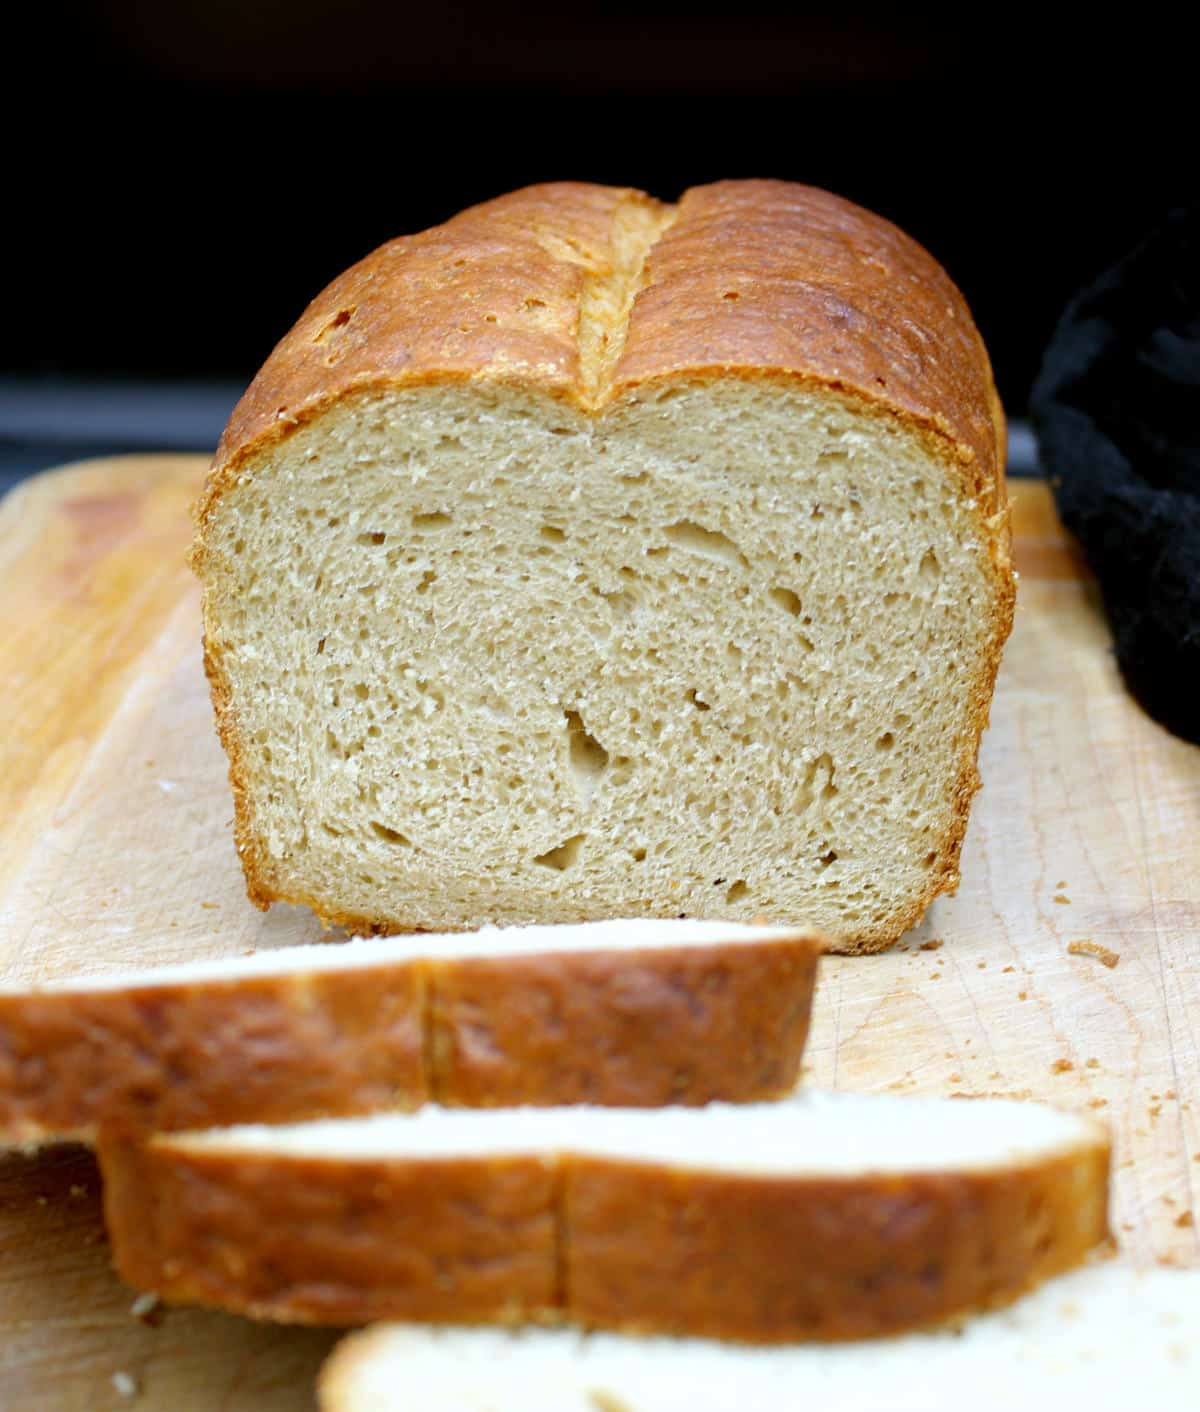 Front photo of a loaf of whole wheat sandwich bread showing the light, airy crumb.